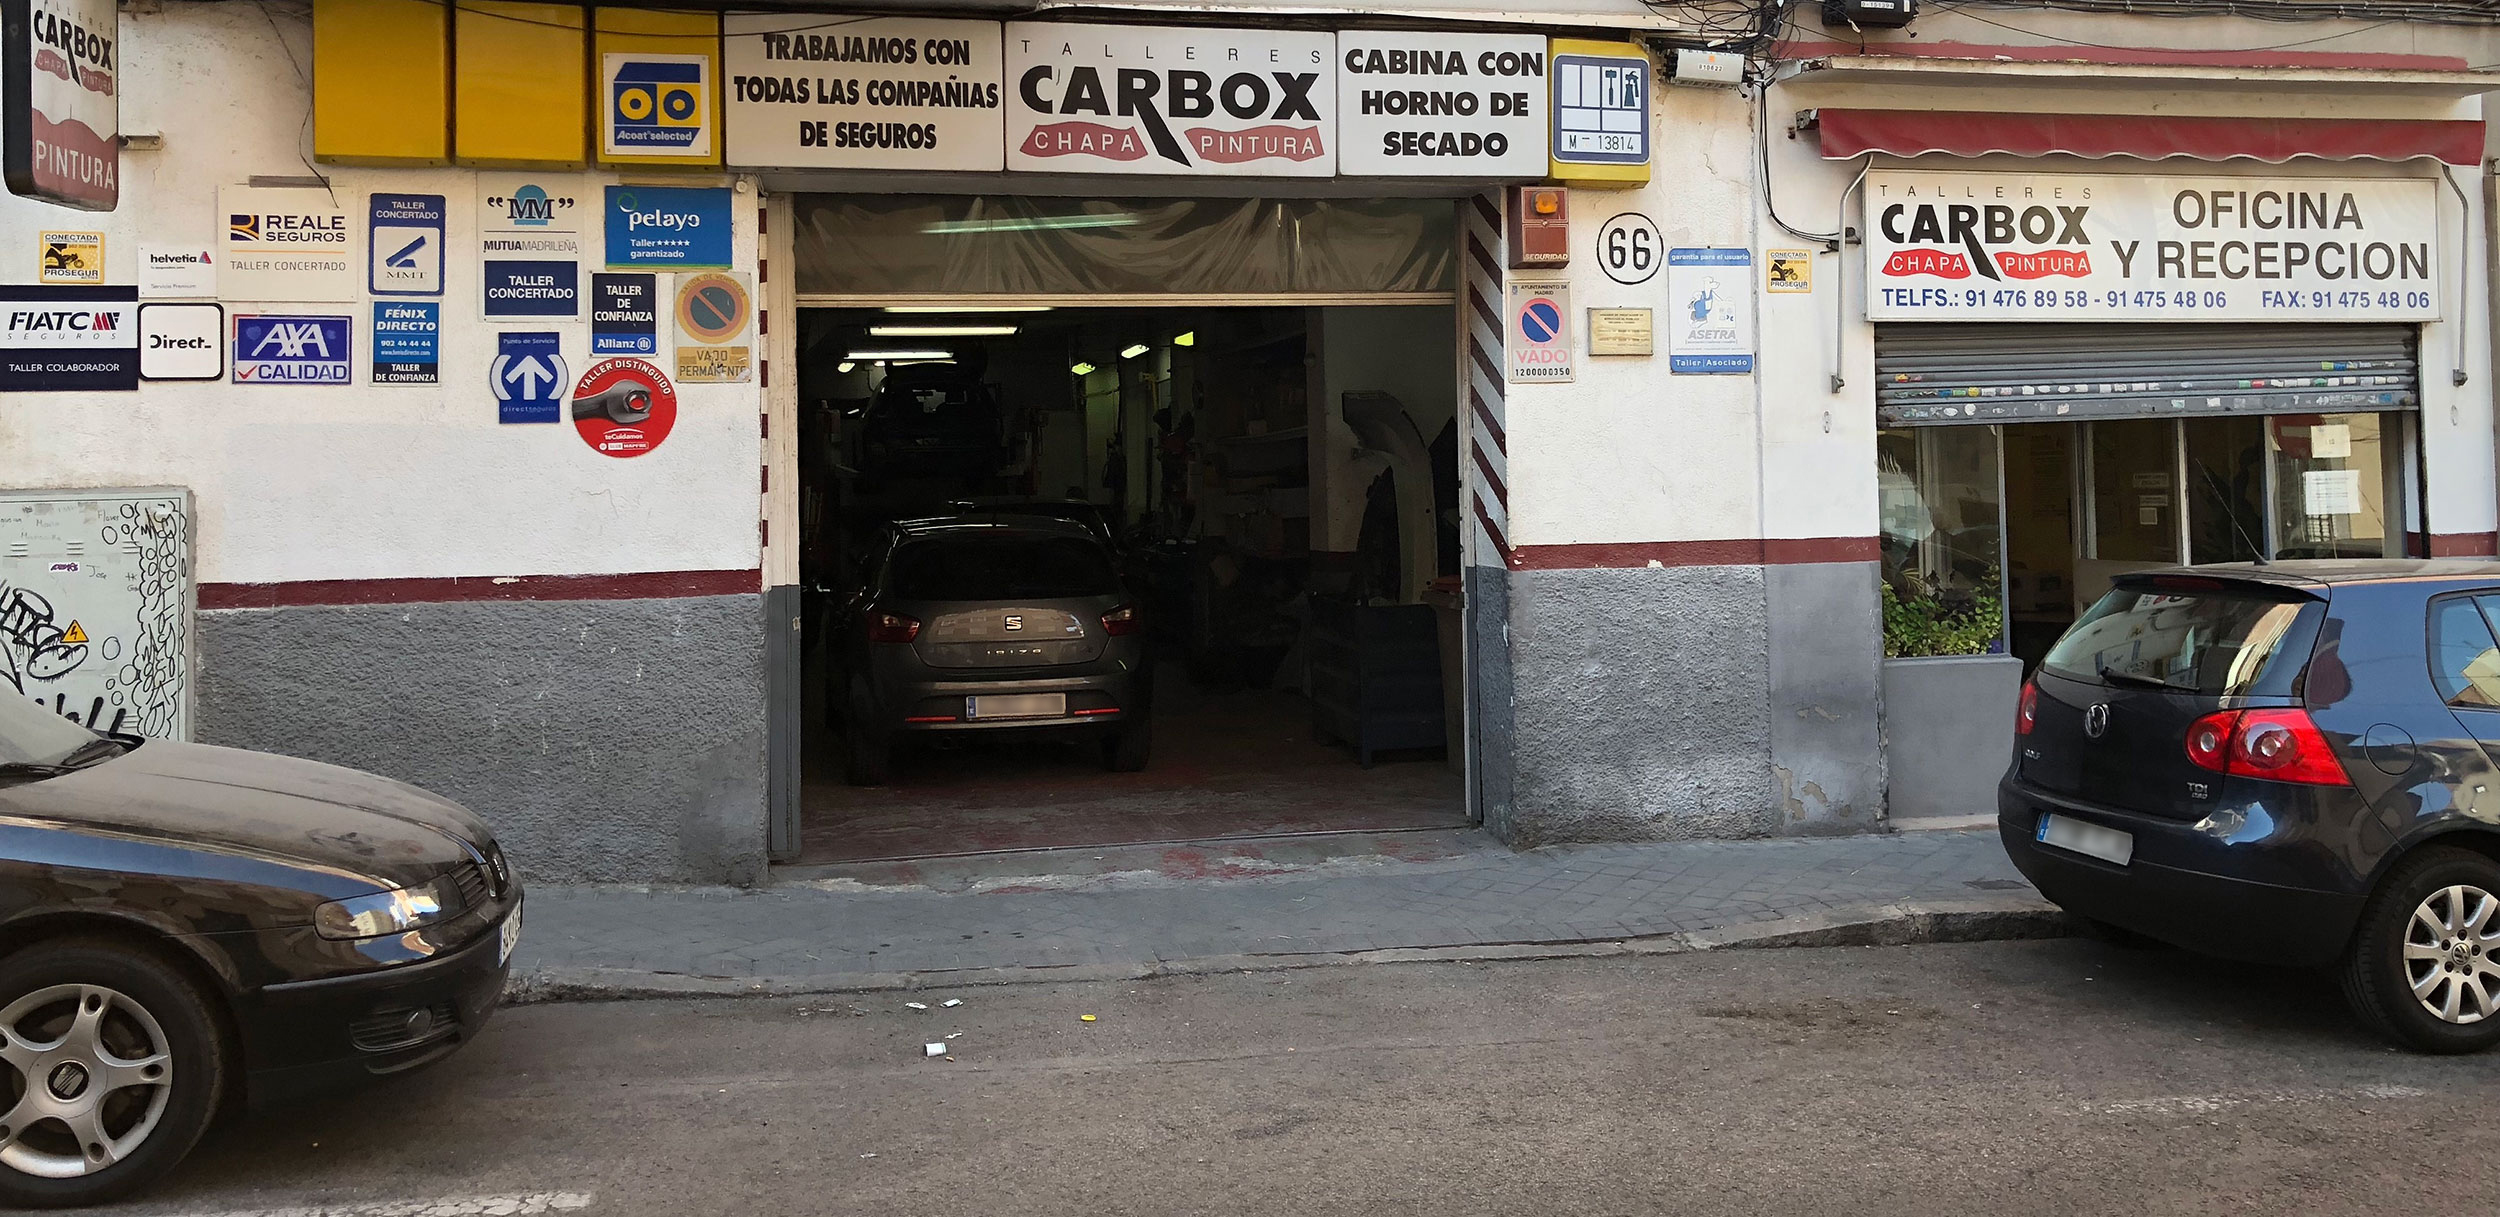 talleres-carbox-madrid